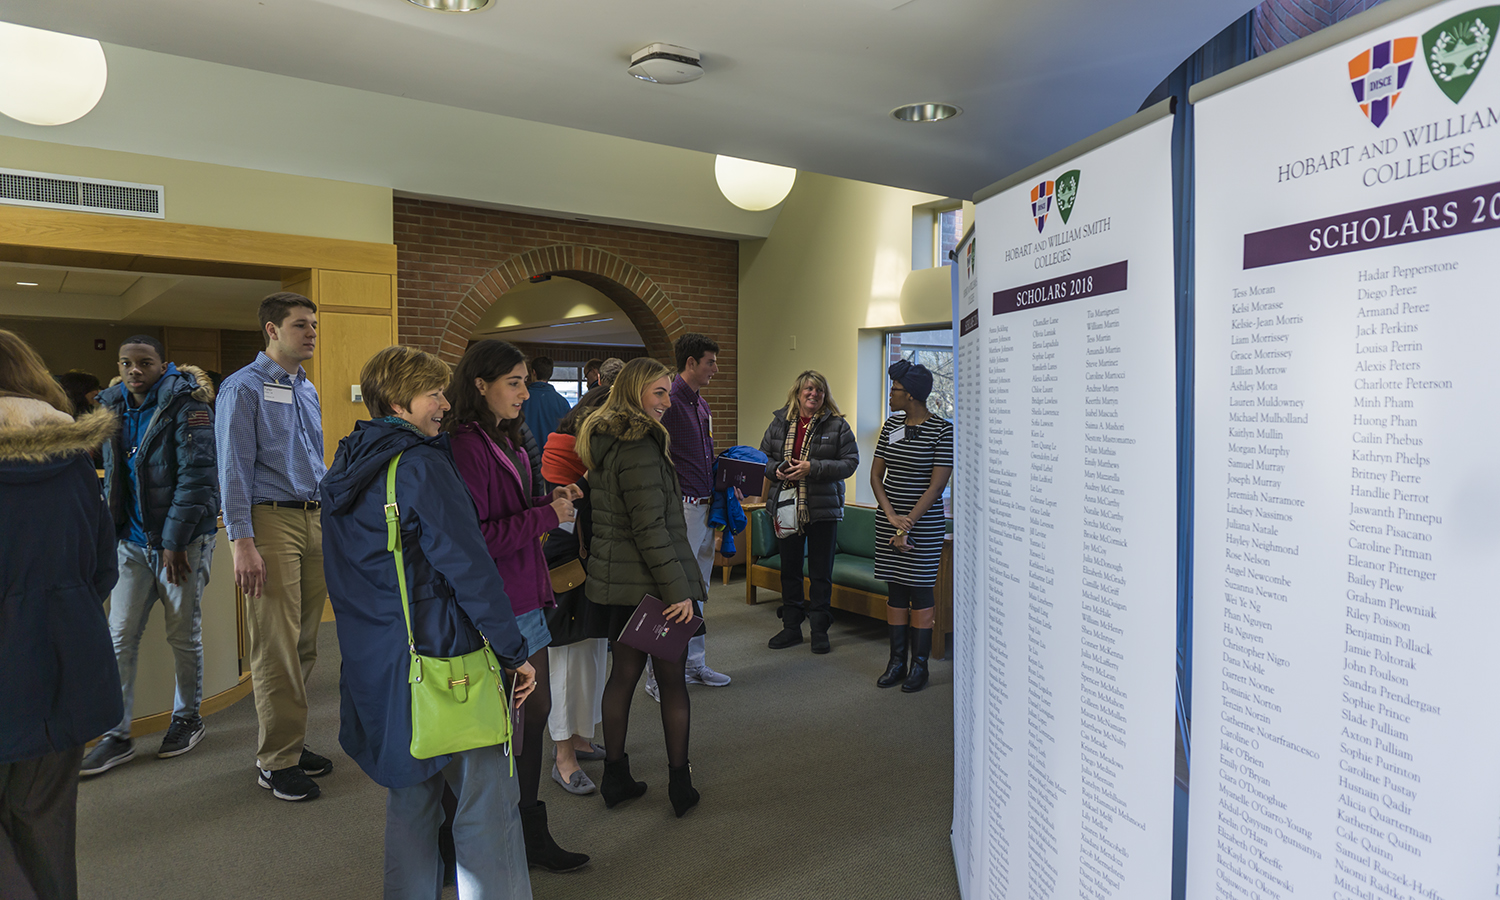 Prospective students check out thier names on display following the HWS Scholar Day dinner.